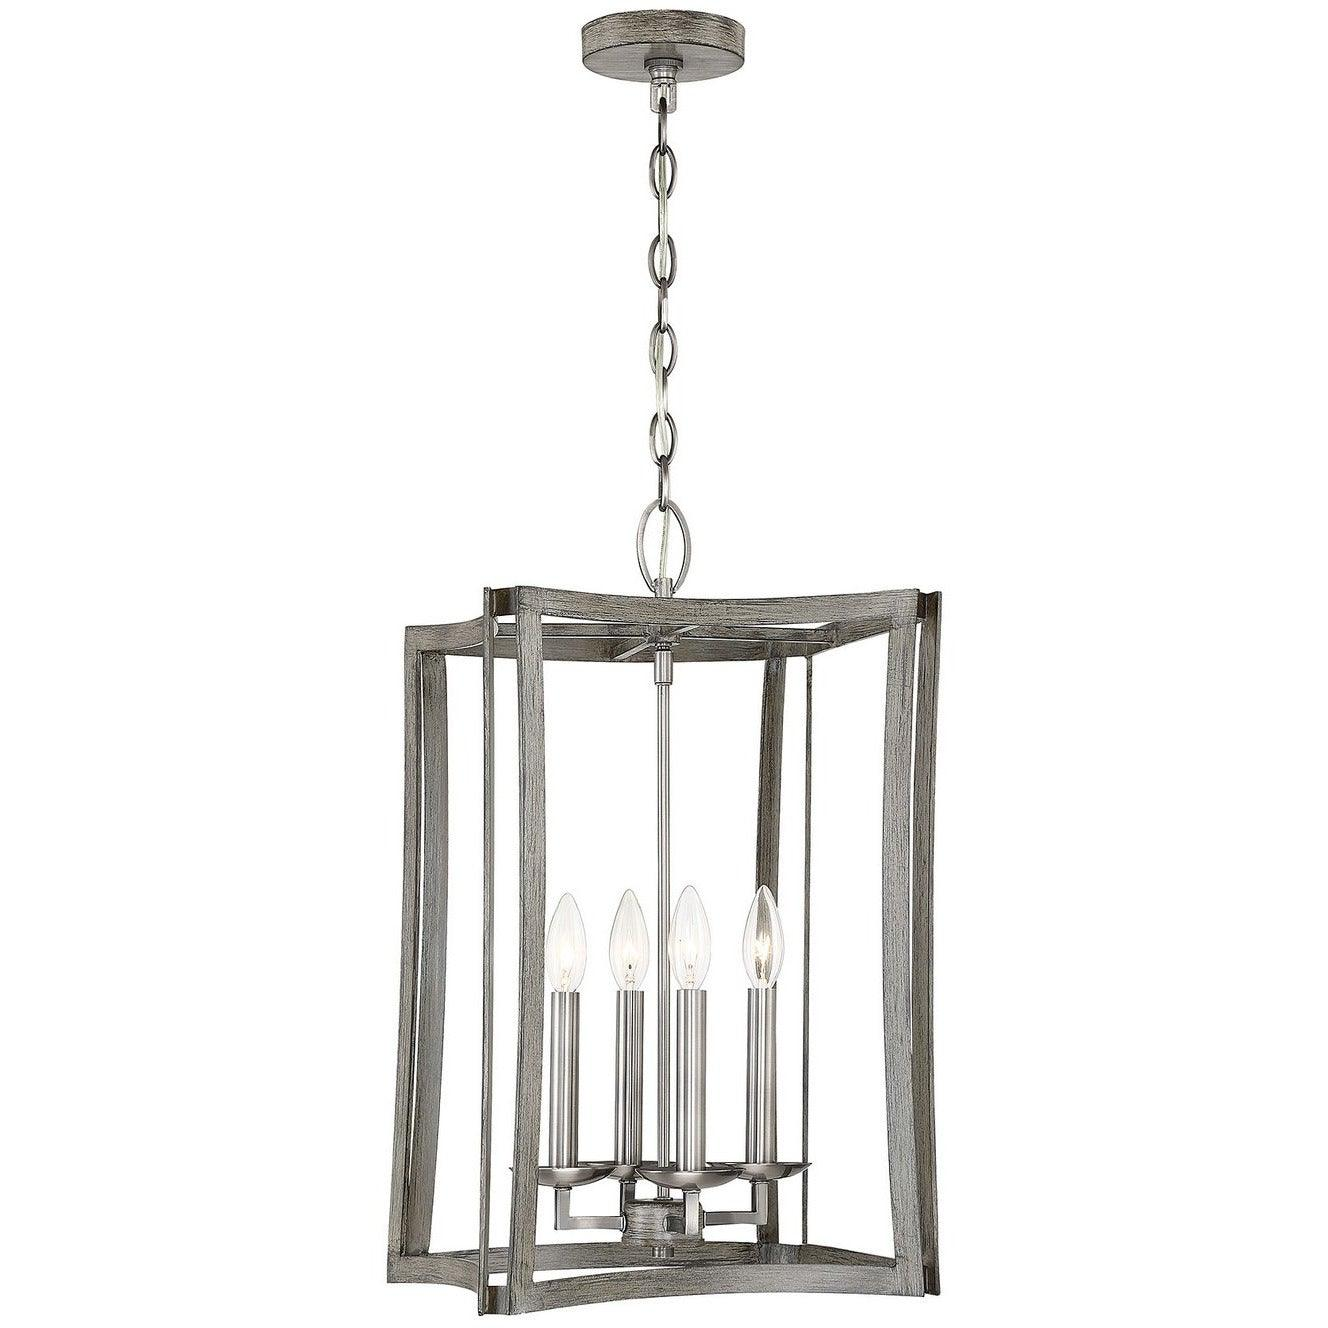 Savoy House - 3-0202-4-139 - Four Light Foyer Pendant - Brookline - Pewter & Greywood